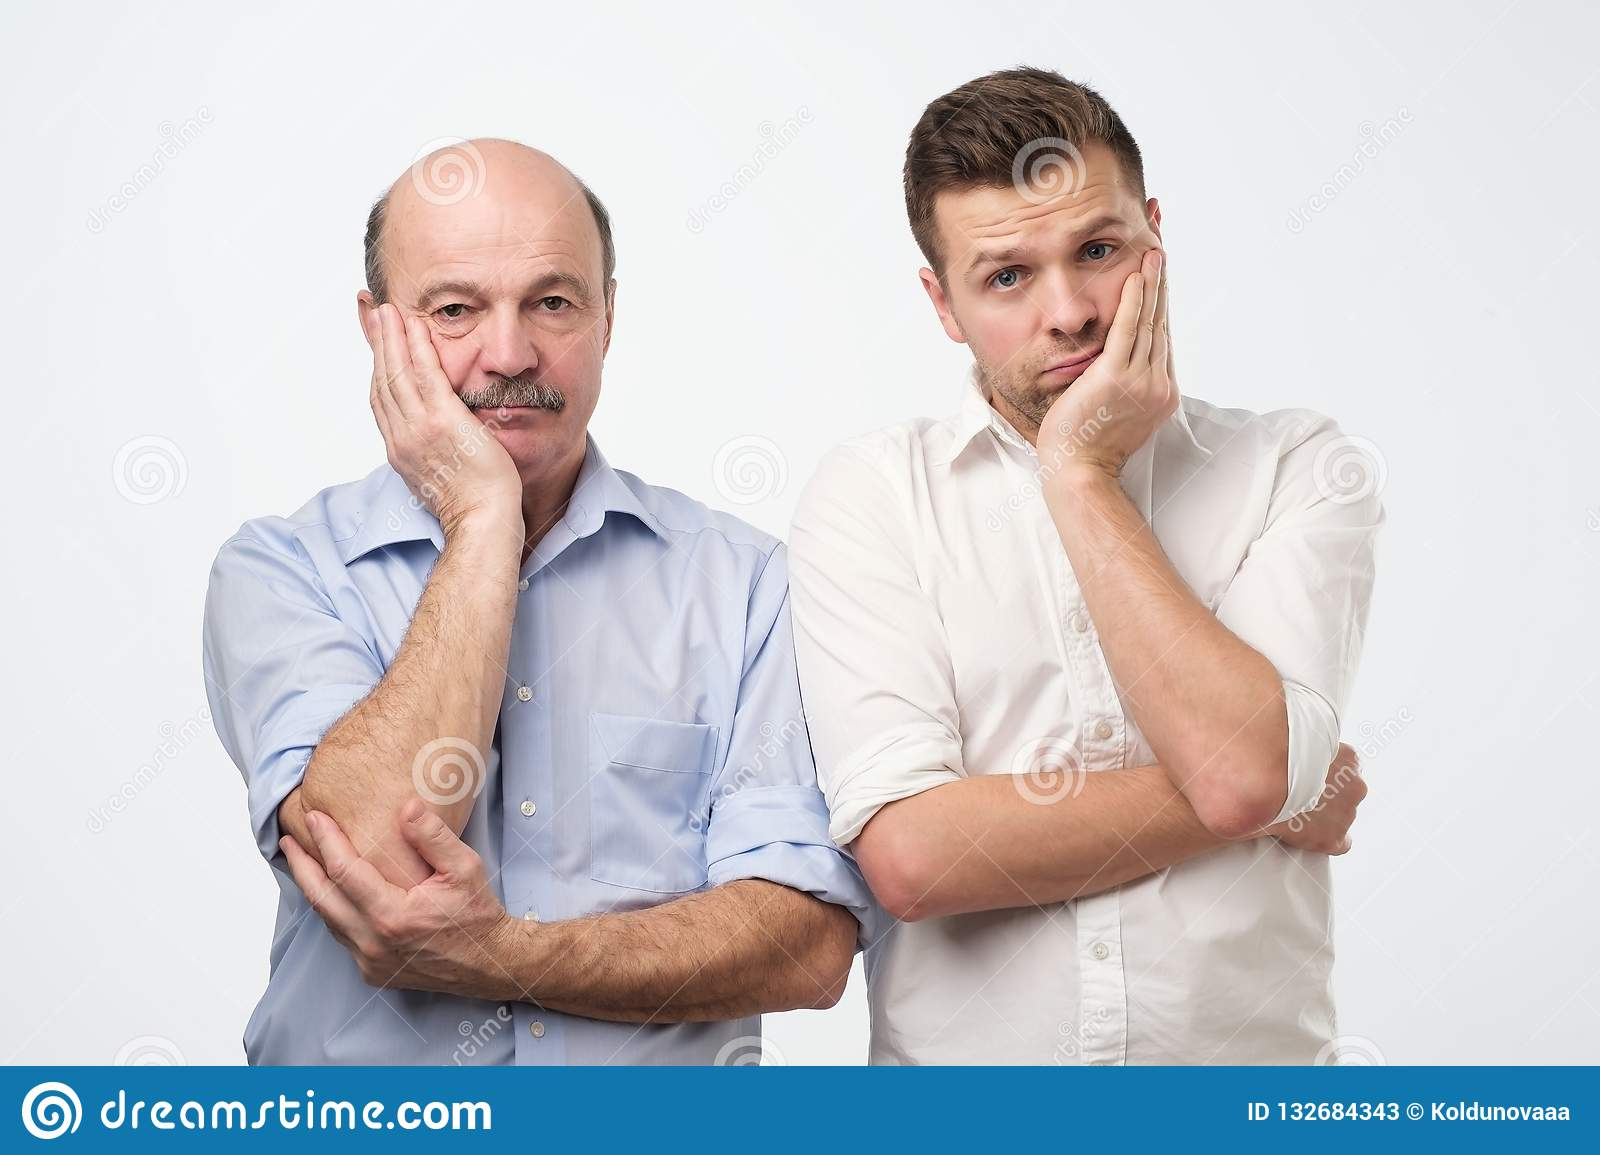 Portrait of two mature men with bored fed up expression, looks displeased up.